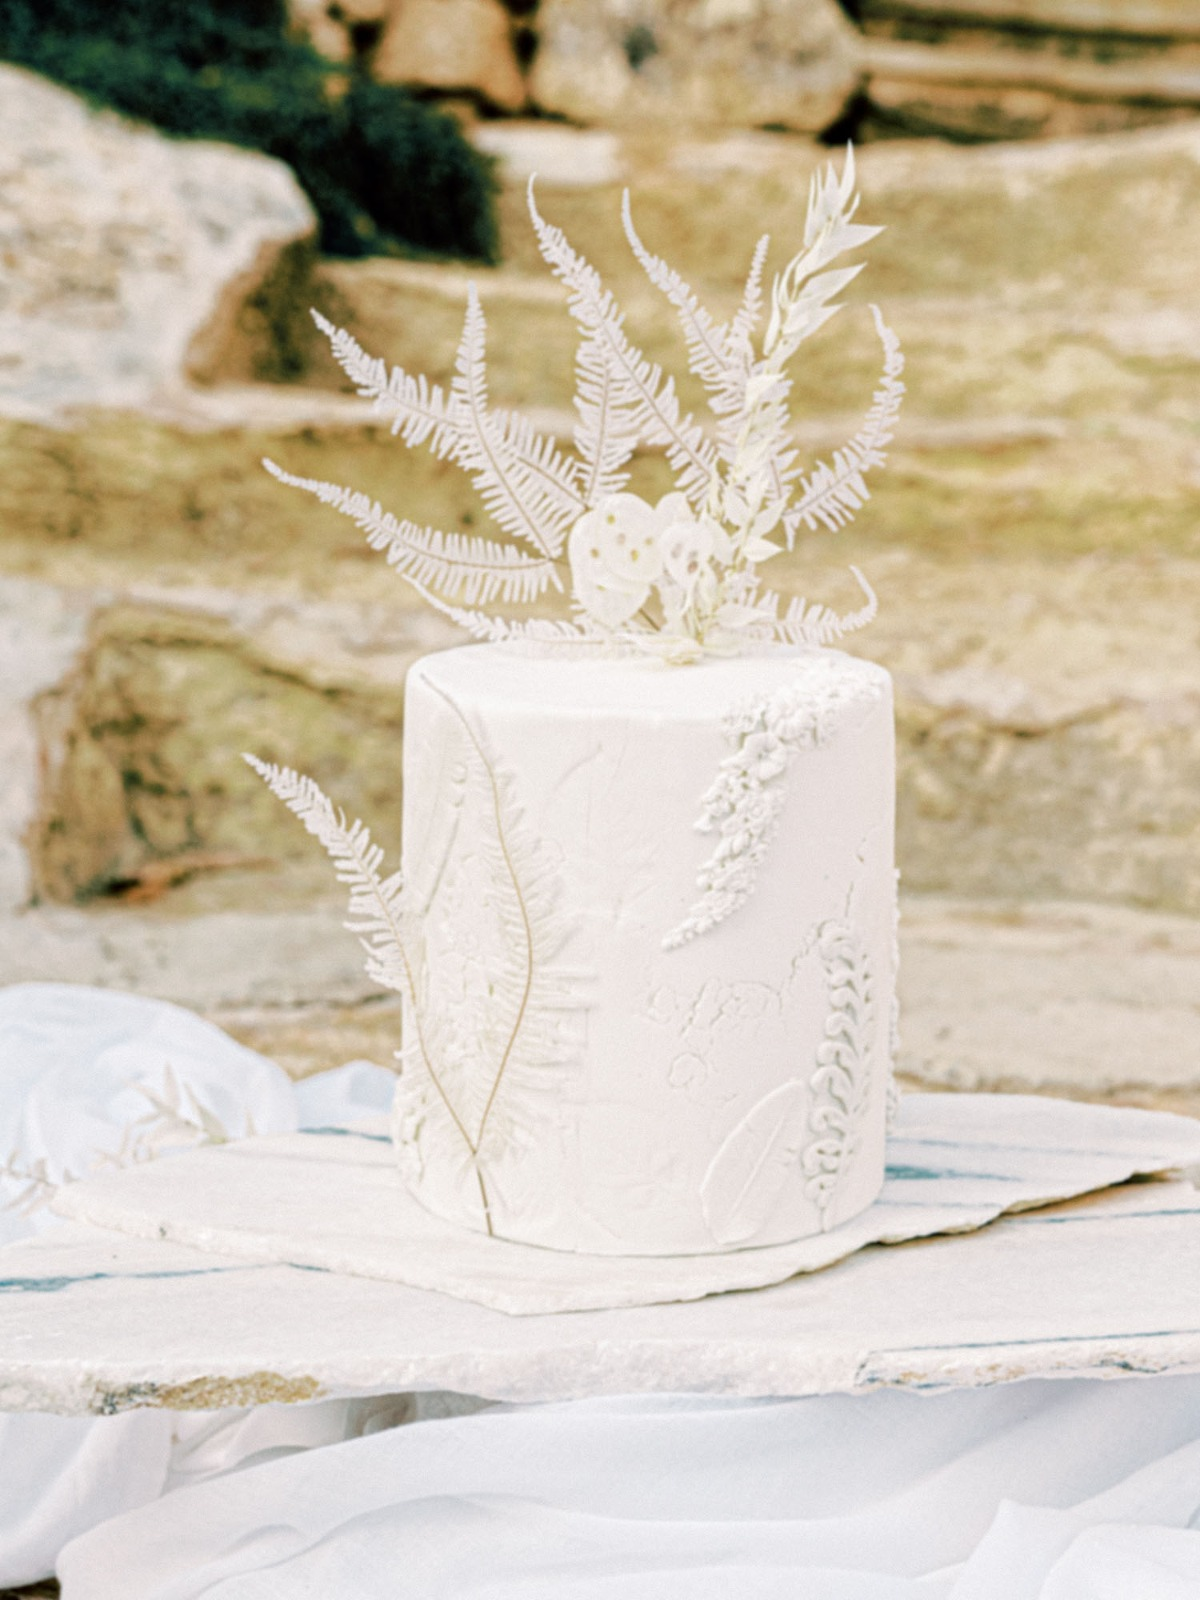 Endless ruffles and Apulian charm in this Italian celebration in purest white